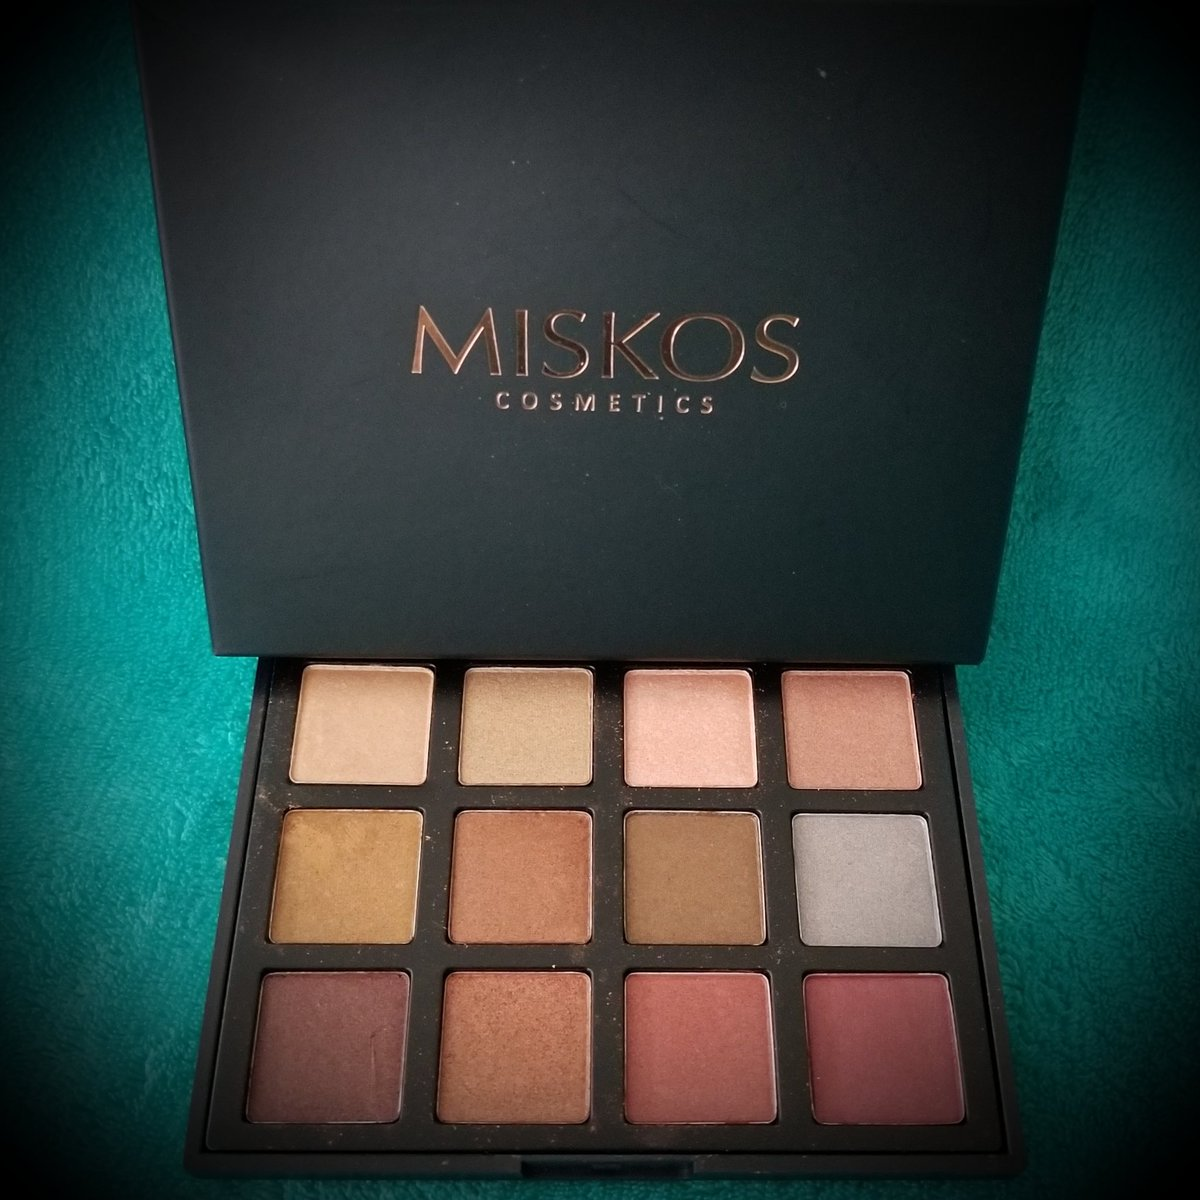 MISKOS 12 Color All Shimmer Warm Winter Eyeshadow Palette - Great eyeshadow palette w/12 glimmer shadows. Warm colors great for any occasion. Great pigmented colors w/staying power. Order now & get 10% off using code: 129FFKOS #DiscountedForReview #MISKOS http://www.amazon.com/gp/product/B0748G8N9R…